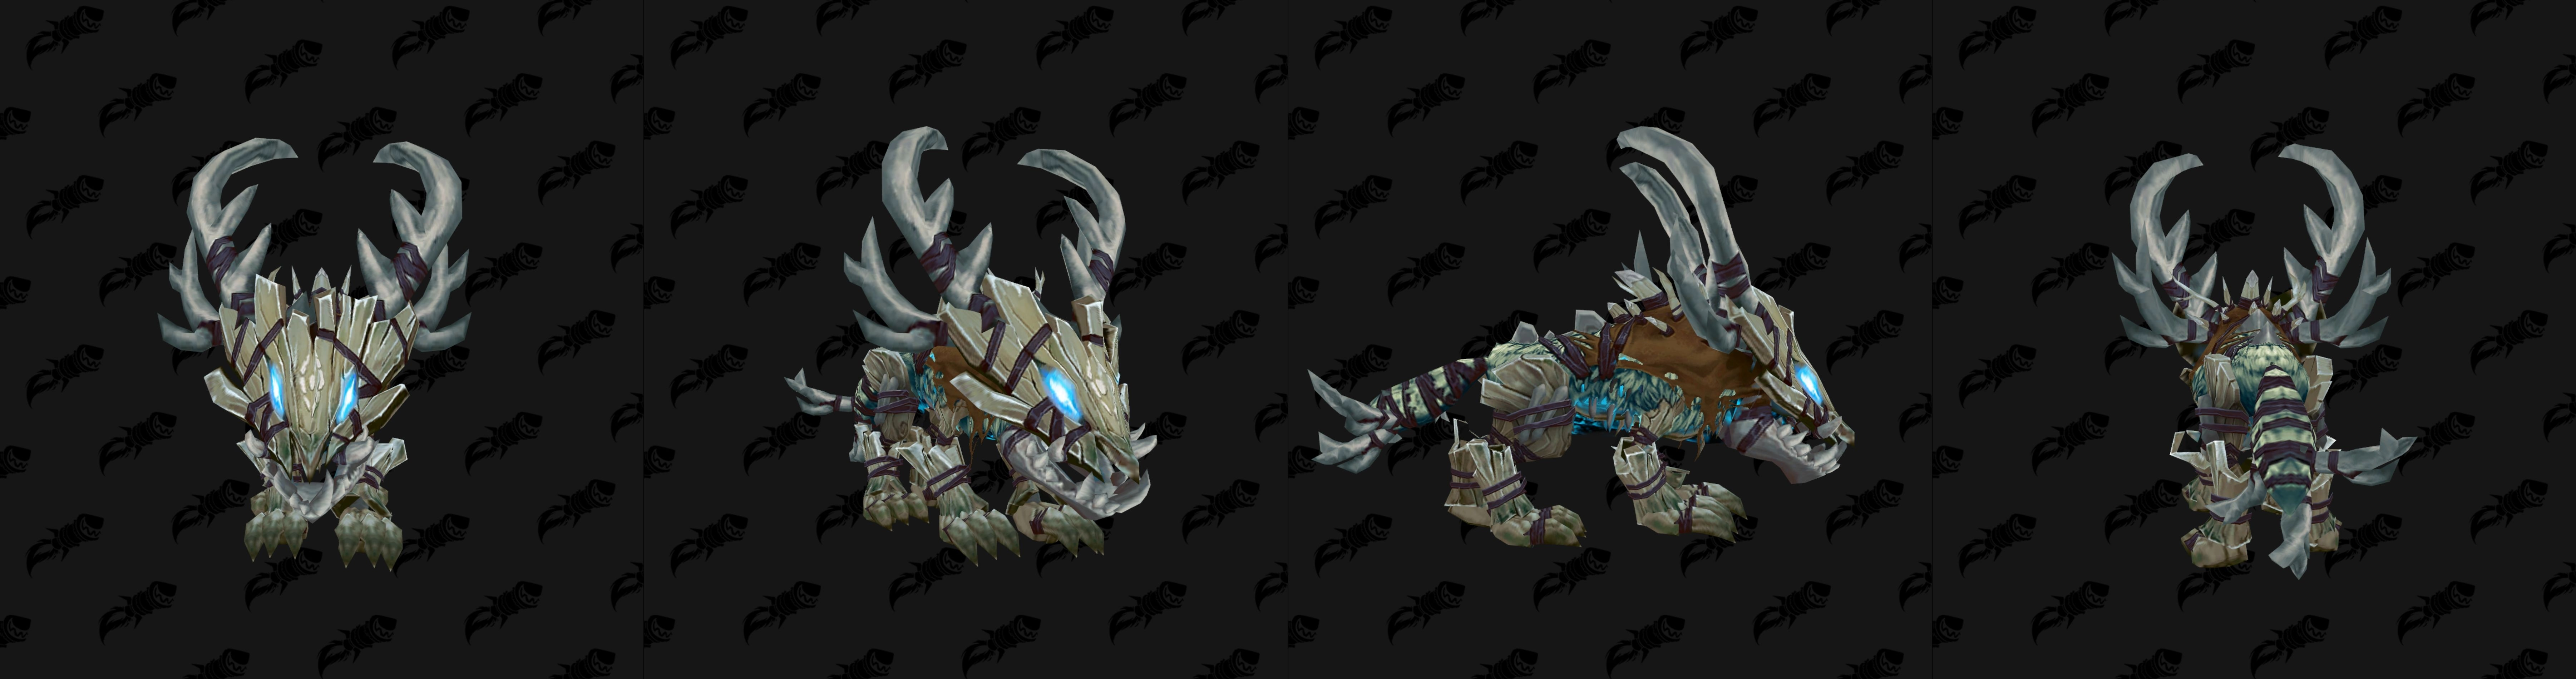 Professions in Battle for Azeroth - Guides - Wowhead